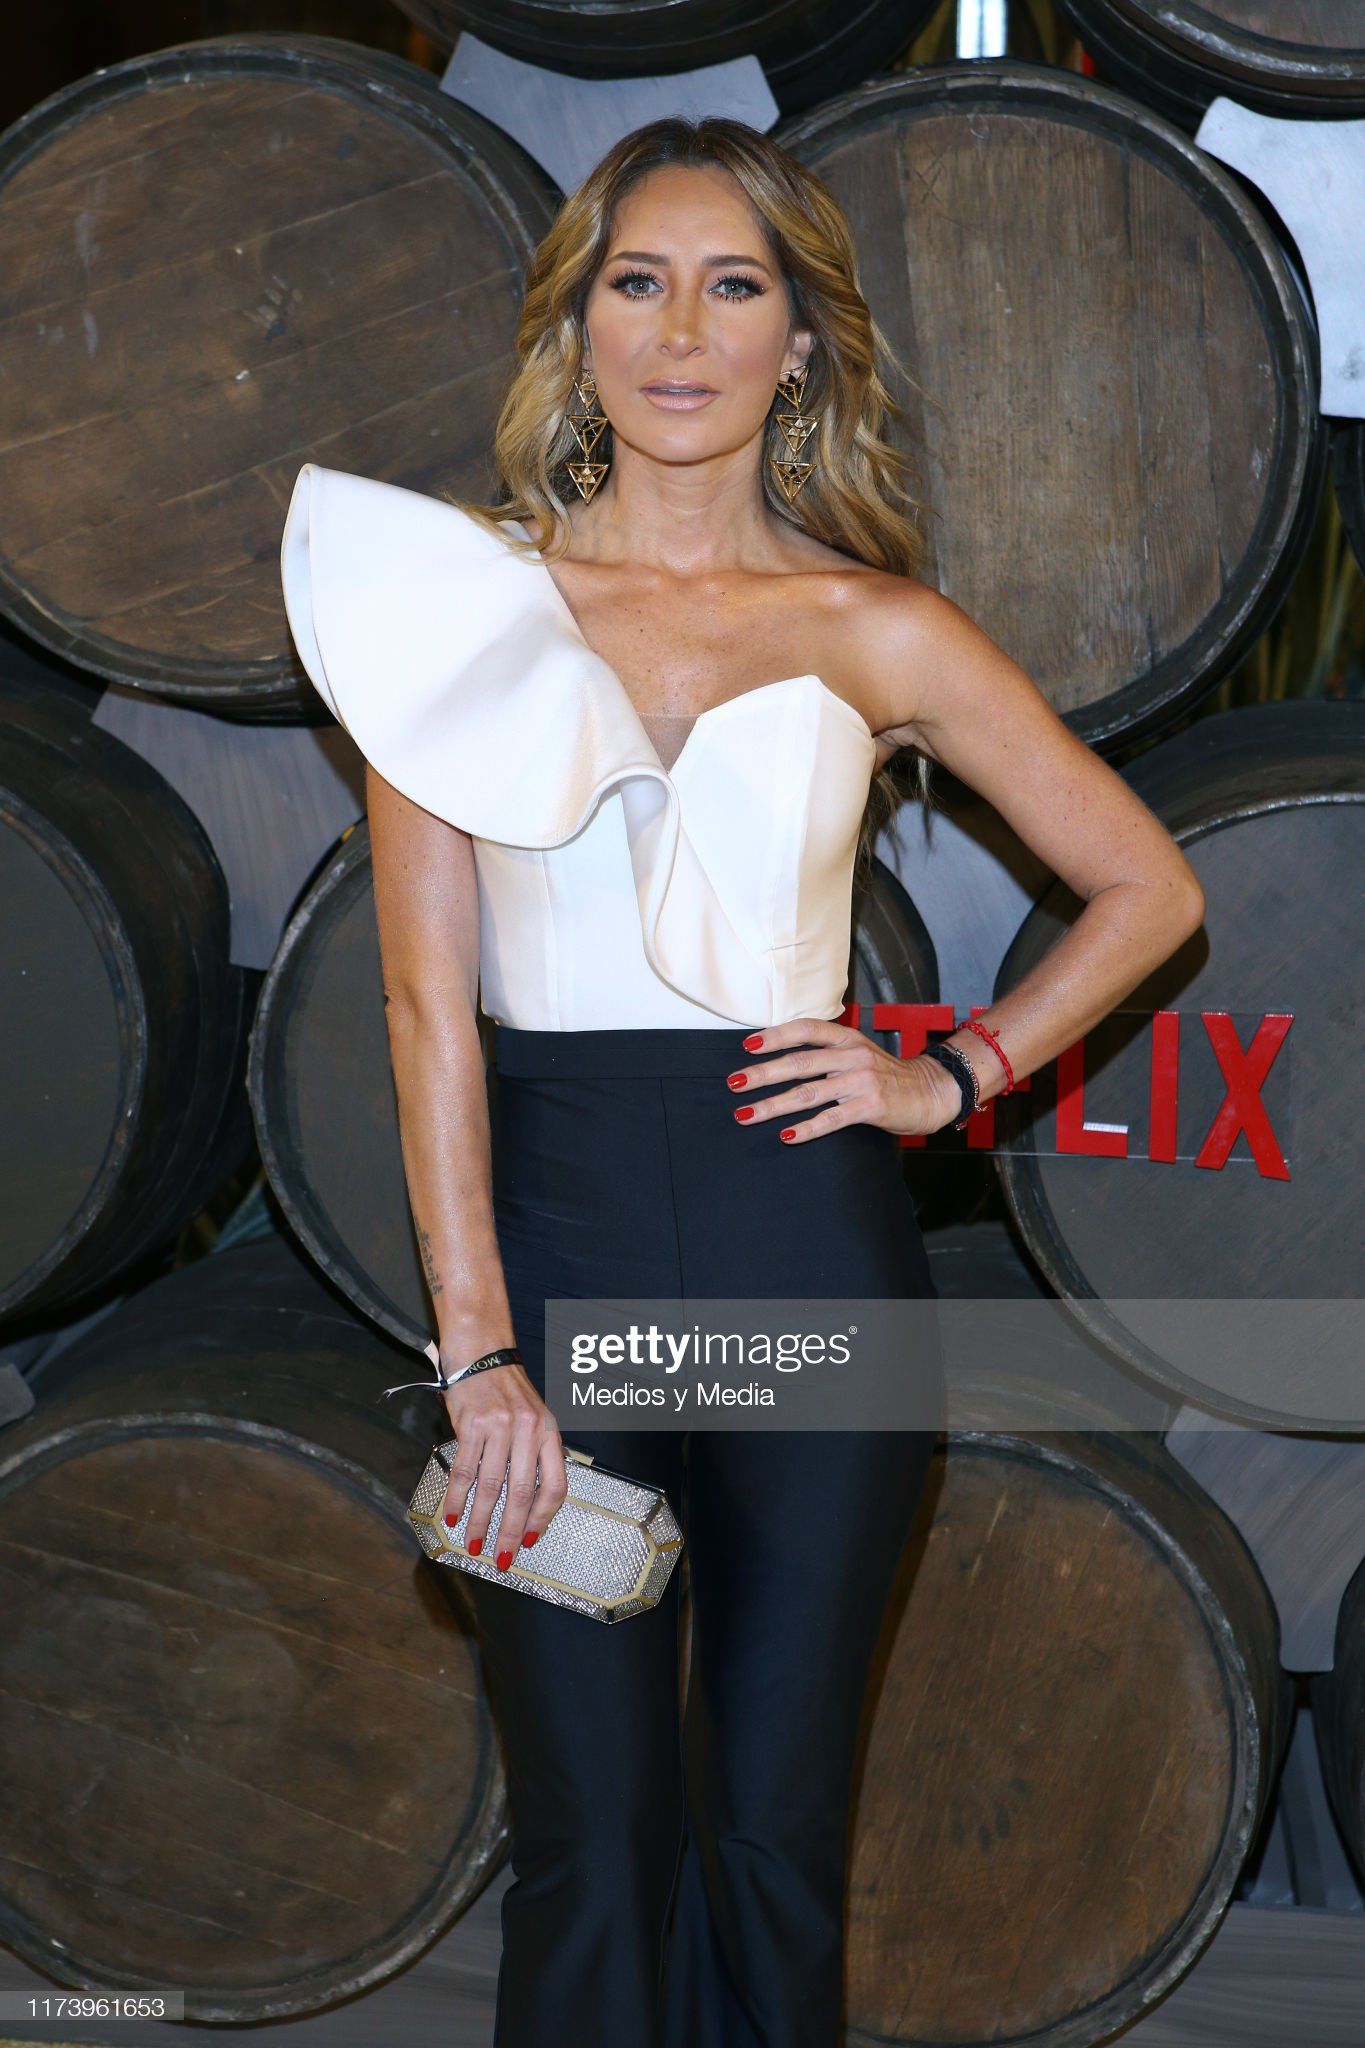 https://media.gettyimages.com/photos/geraldine-bazn-poses-for-photos-during-the-red-carpet-of-the-new-picture-id1173961653?s=2048x2048